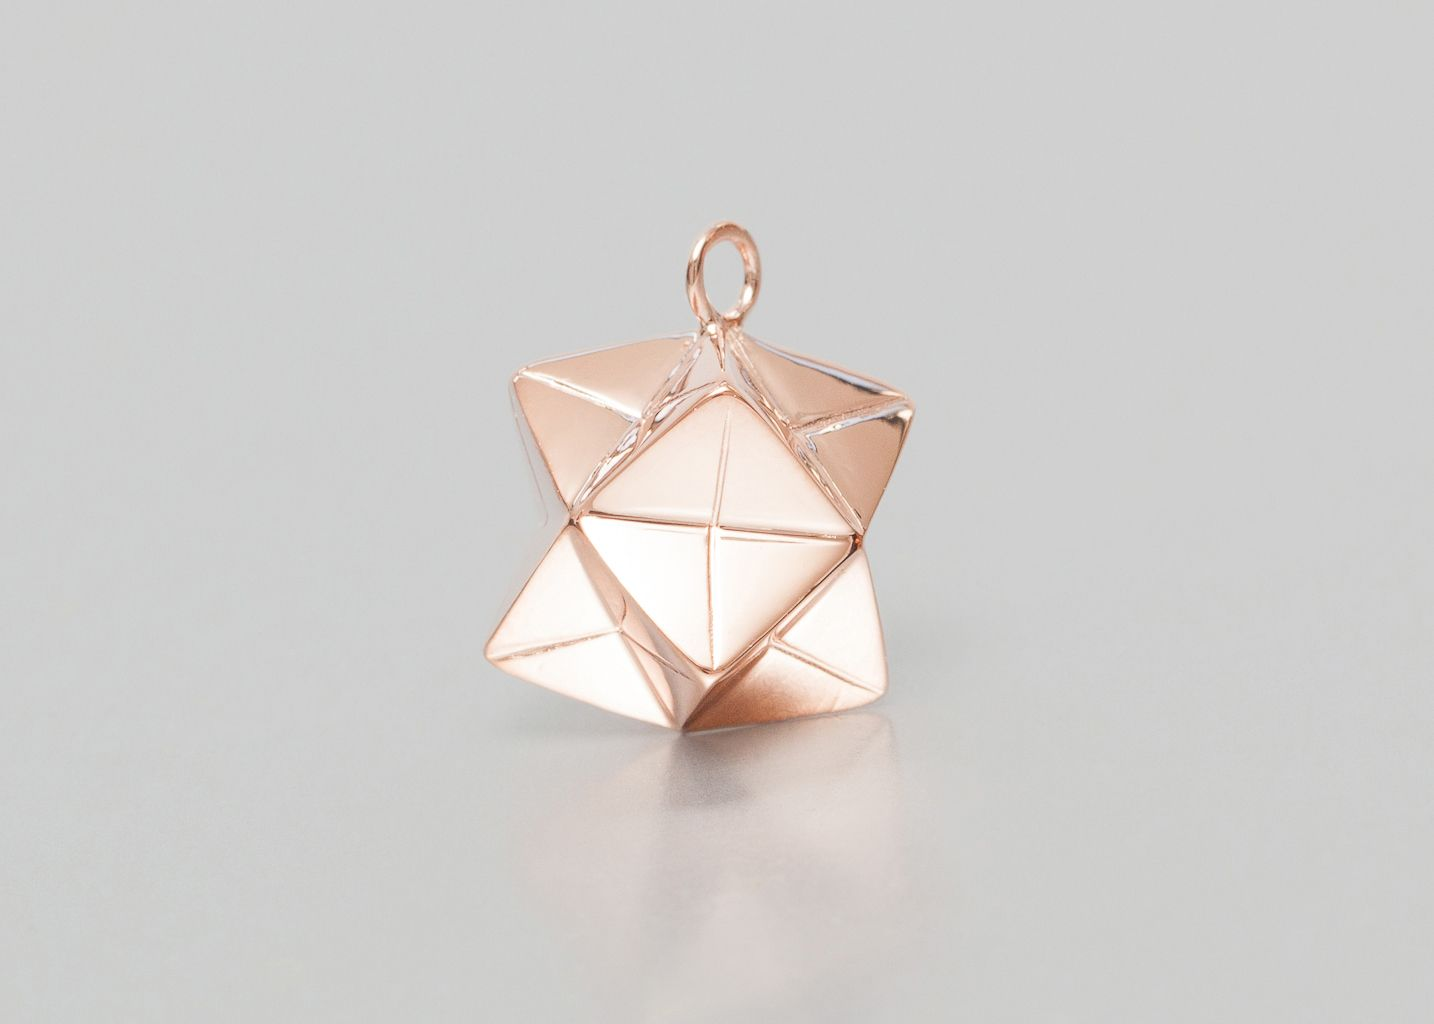 Sautoir Magic Ball Origami - Origami Jewellery